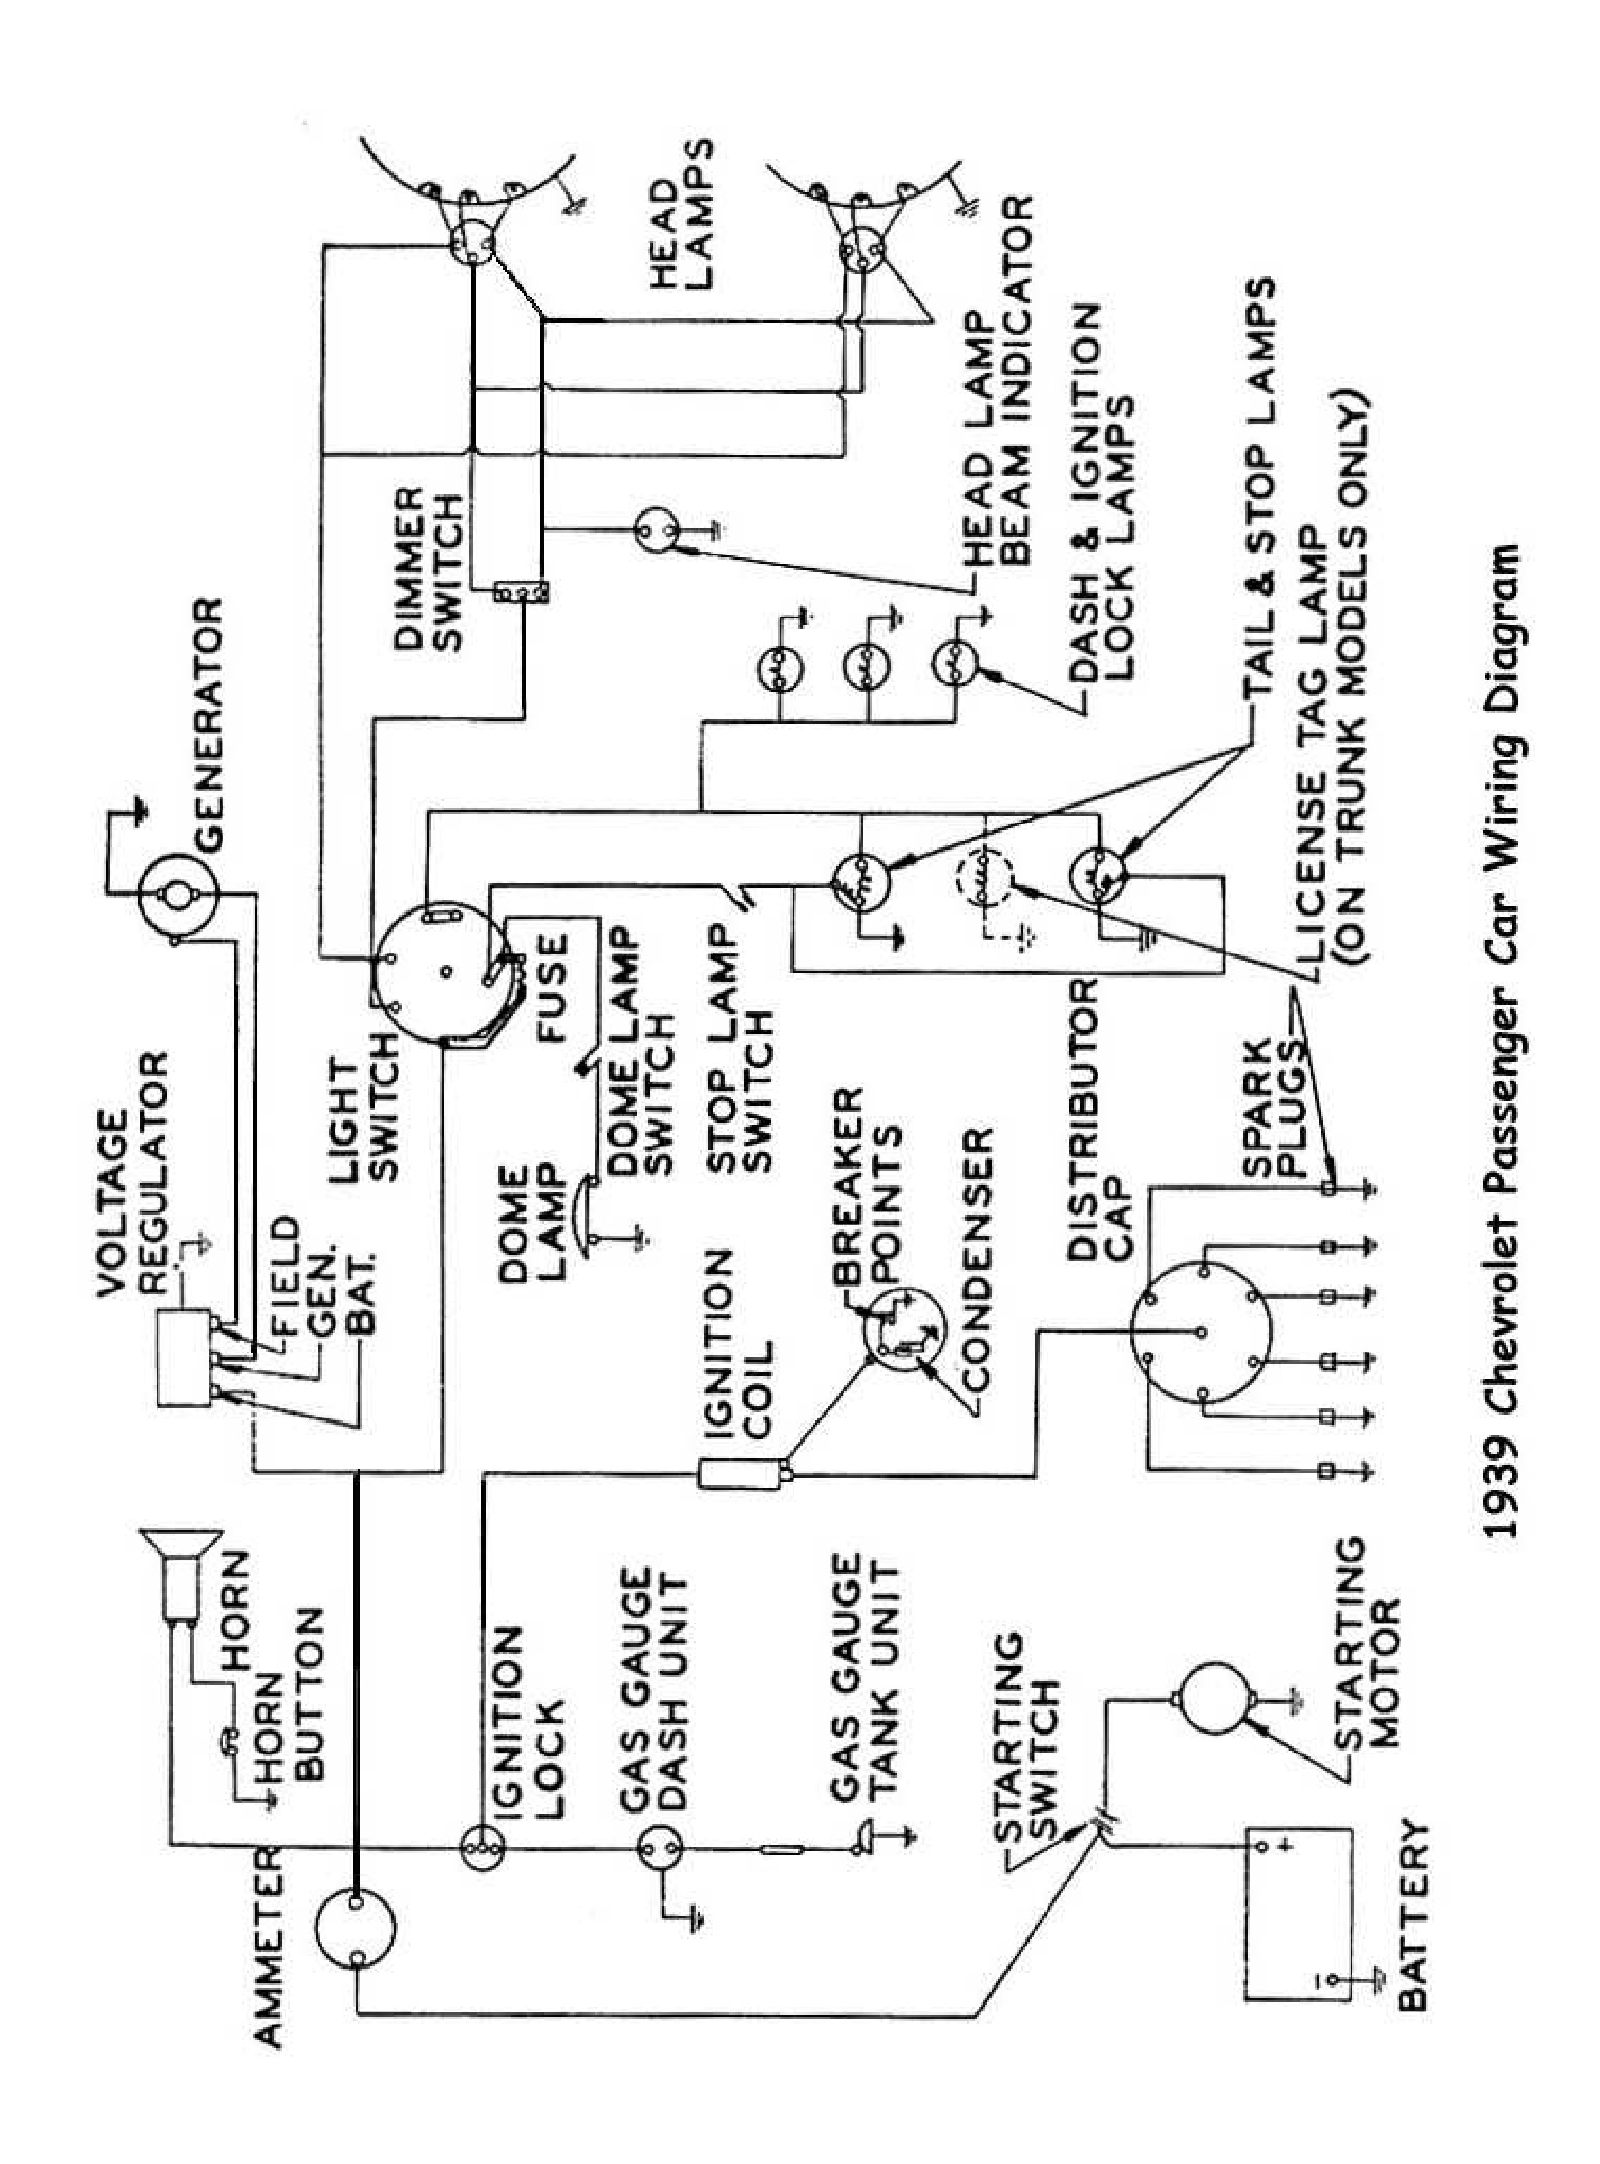 Chevy Wiring Diagrams Automotive Electrical Diagram Schematics 1939 Everything You Need To Know About Blazer